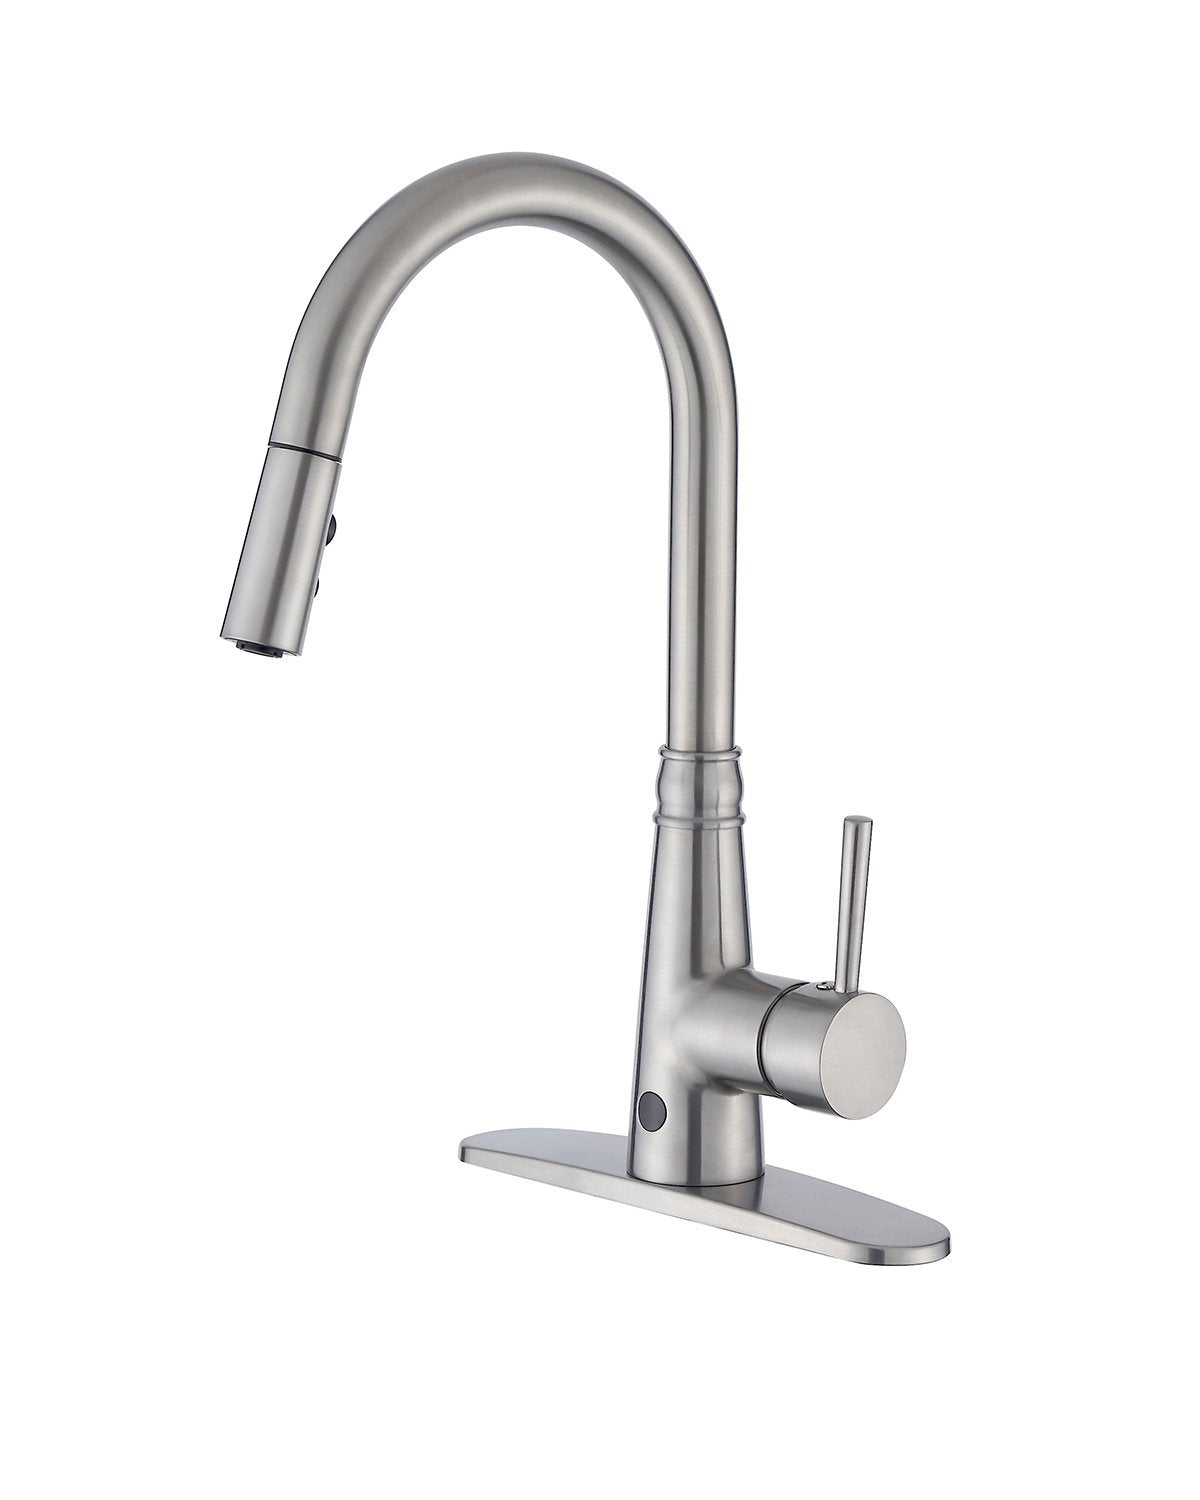 Buy-Hive Sensor Kitchen Faucet Touchless Sprayer Tap Pull-Down ...